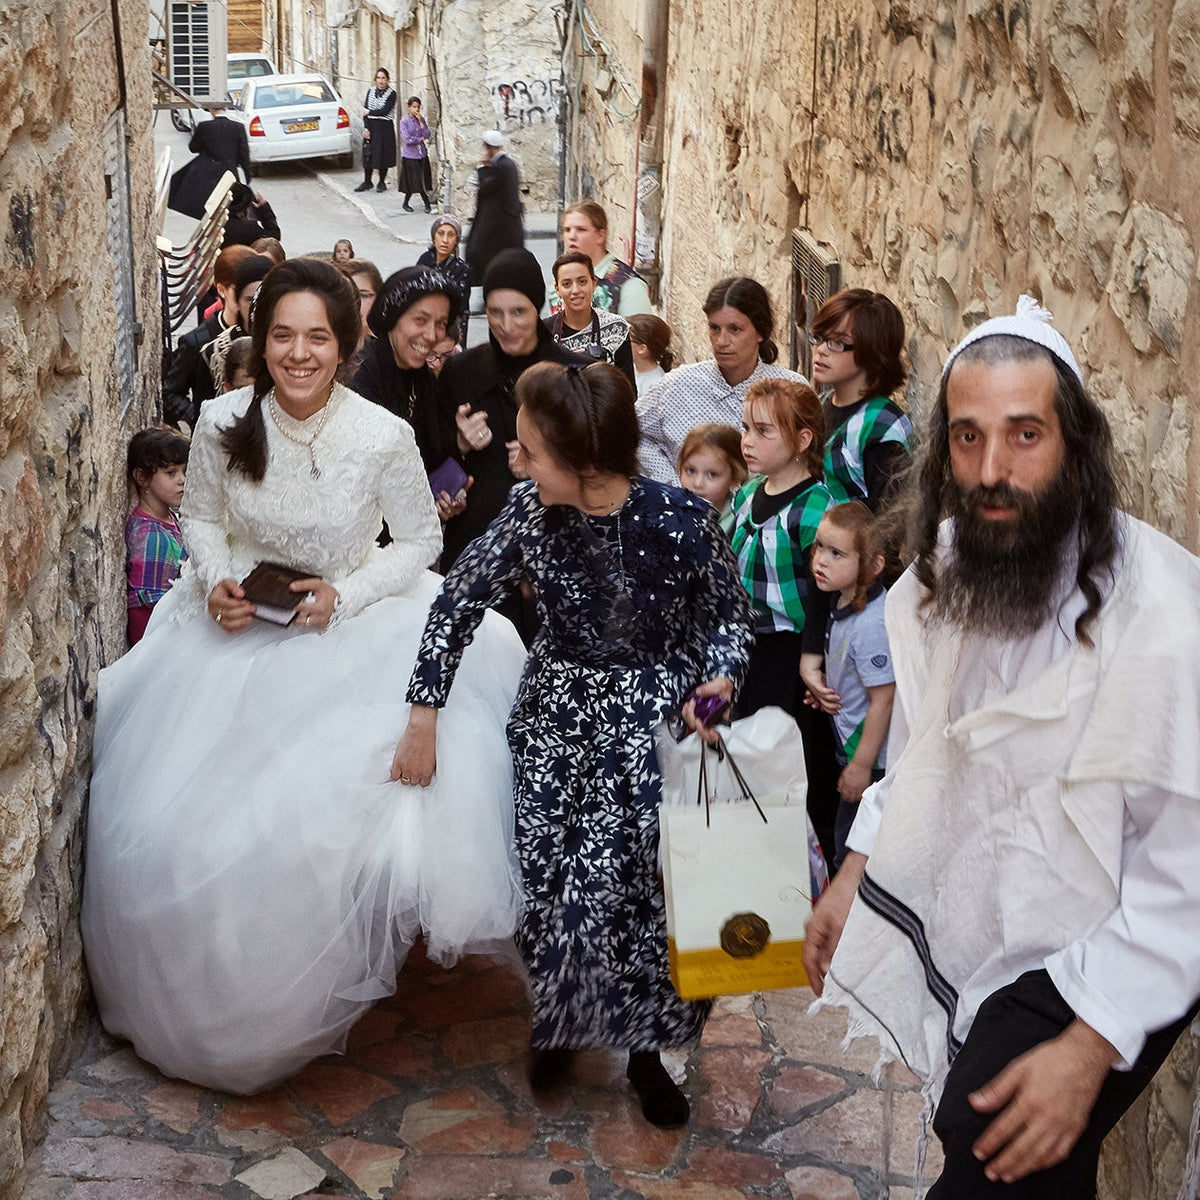 An ultra-Orthodox bride walking through a narrow alleyway.